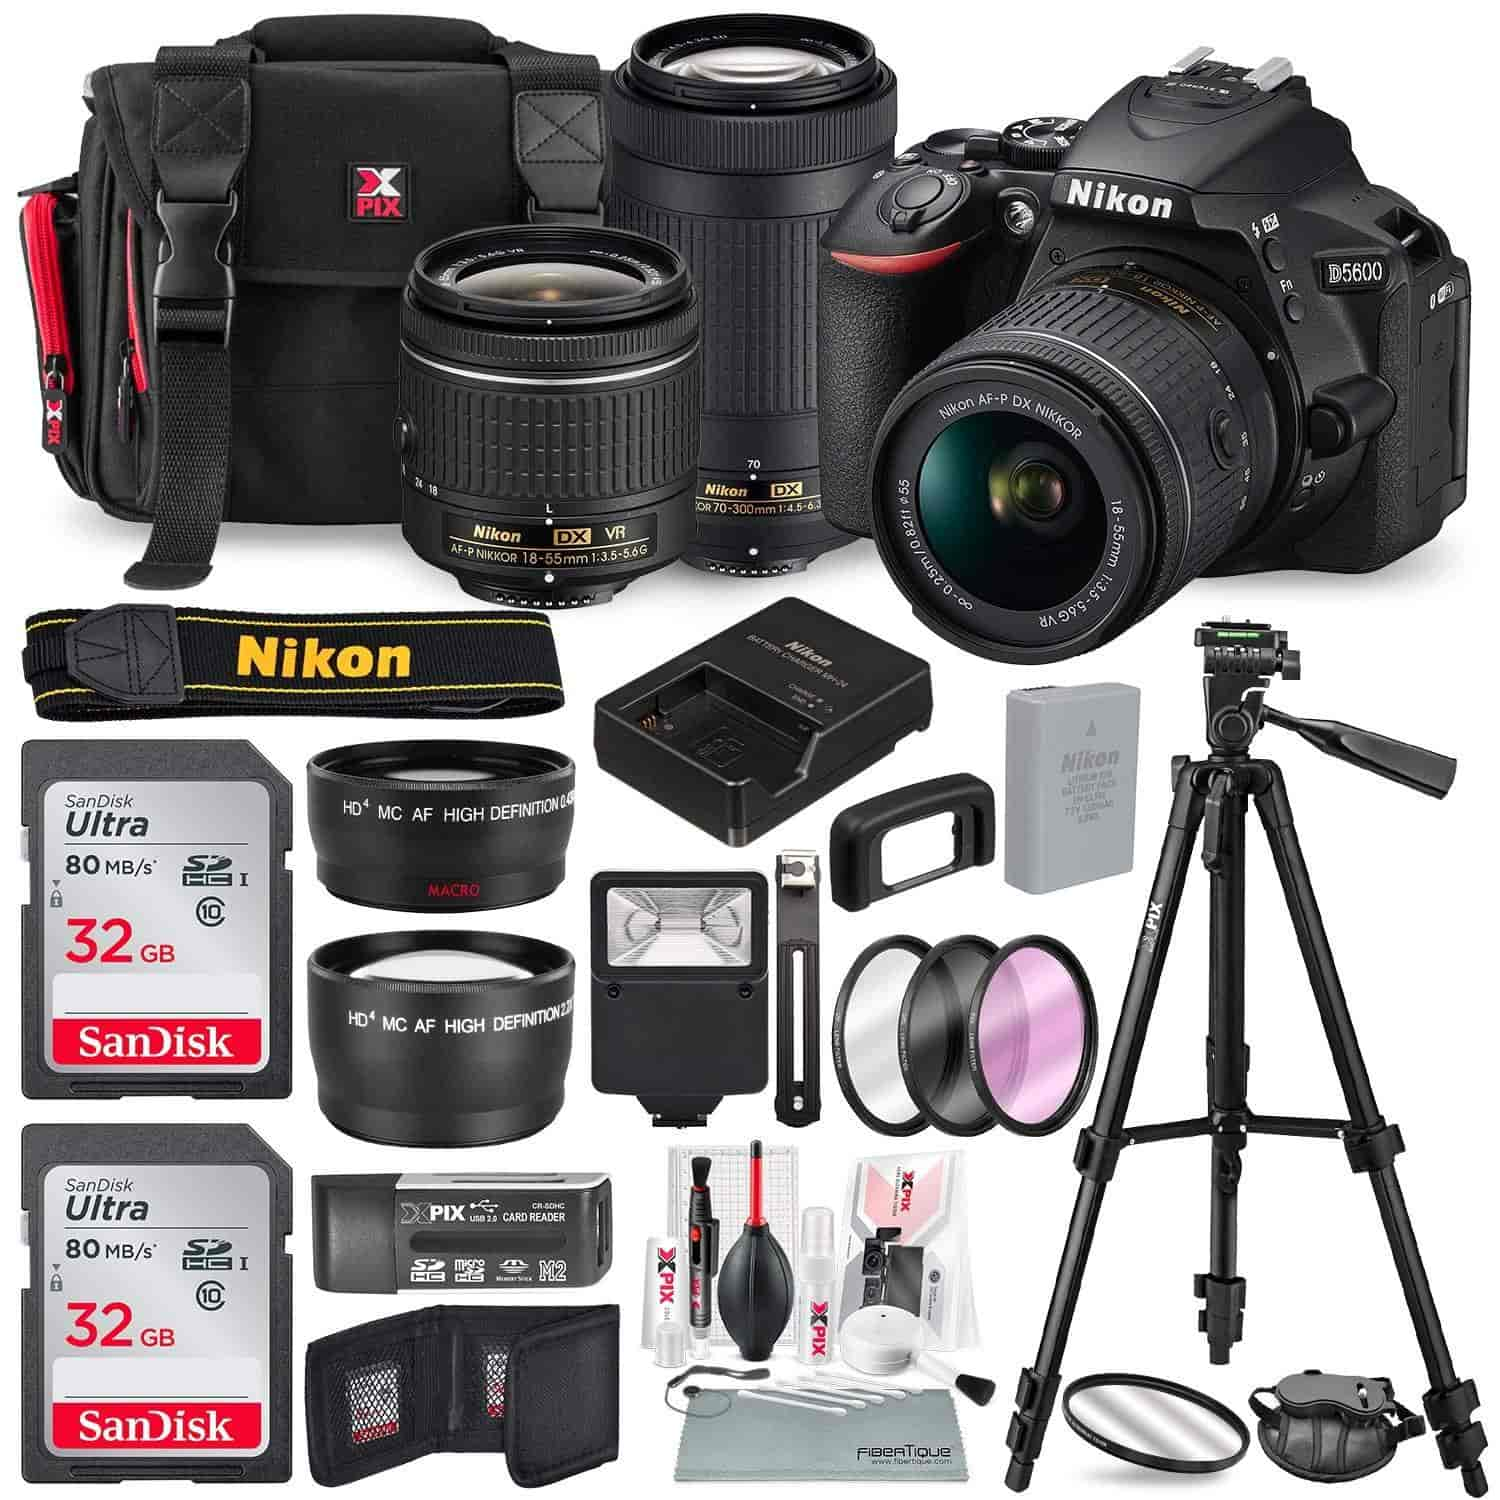 Nikon-D5600-DSLR-Camera-with-NIKKOR-18-55mm-70-300mm-Lenses-W-Total-of-48-GB-SD-Card-Telephoto-Wideangle-Lens-Xpix-Lens-Handling-Accessories-with-Basi